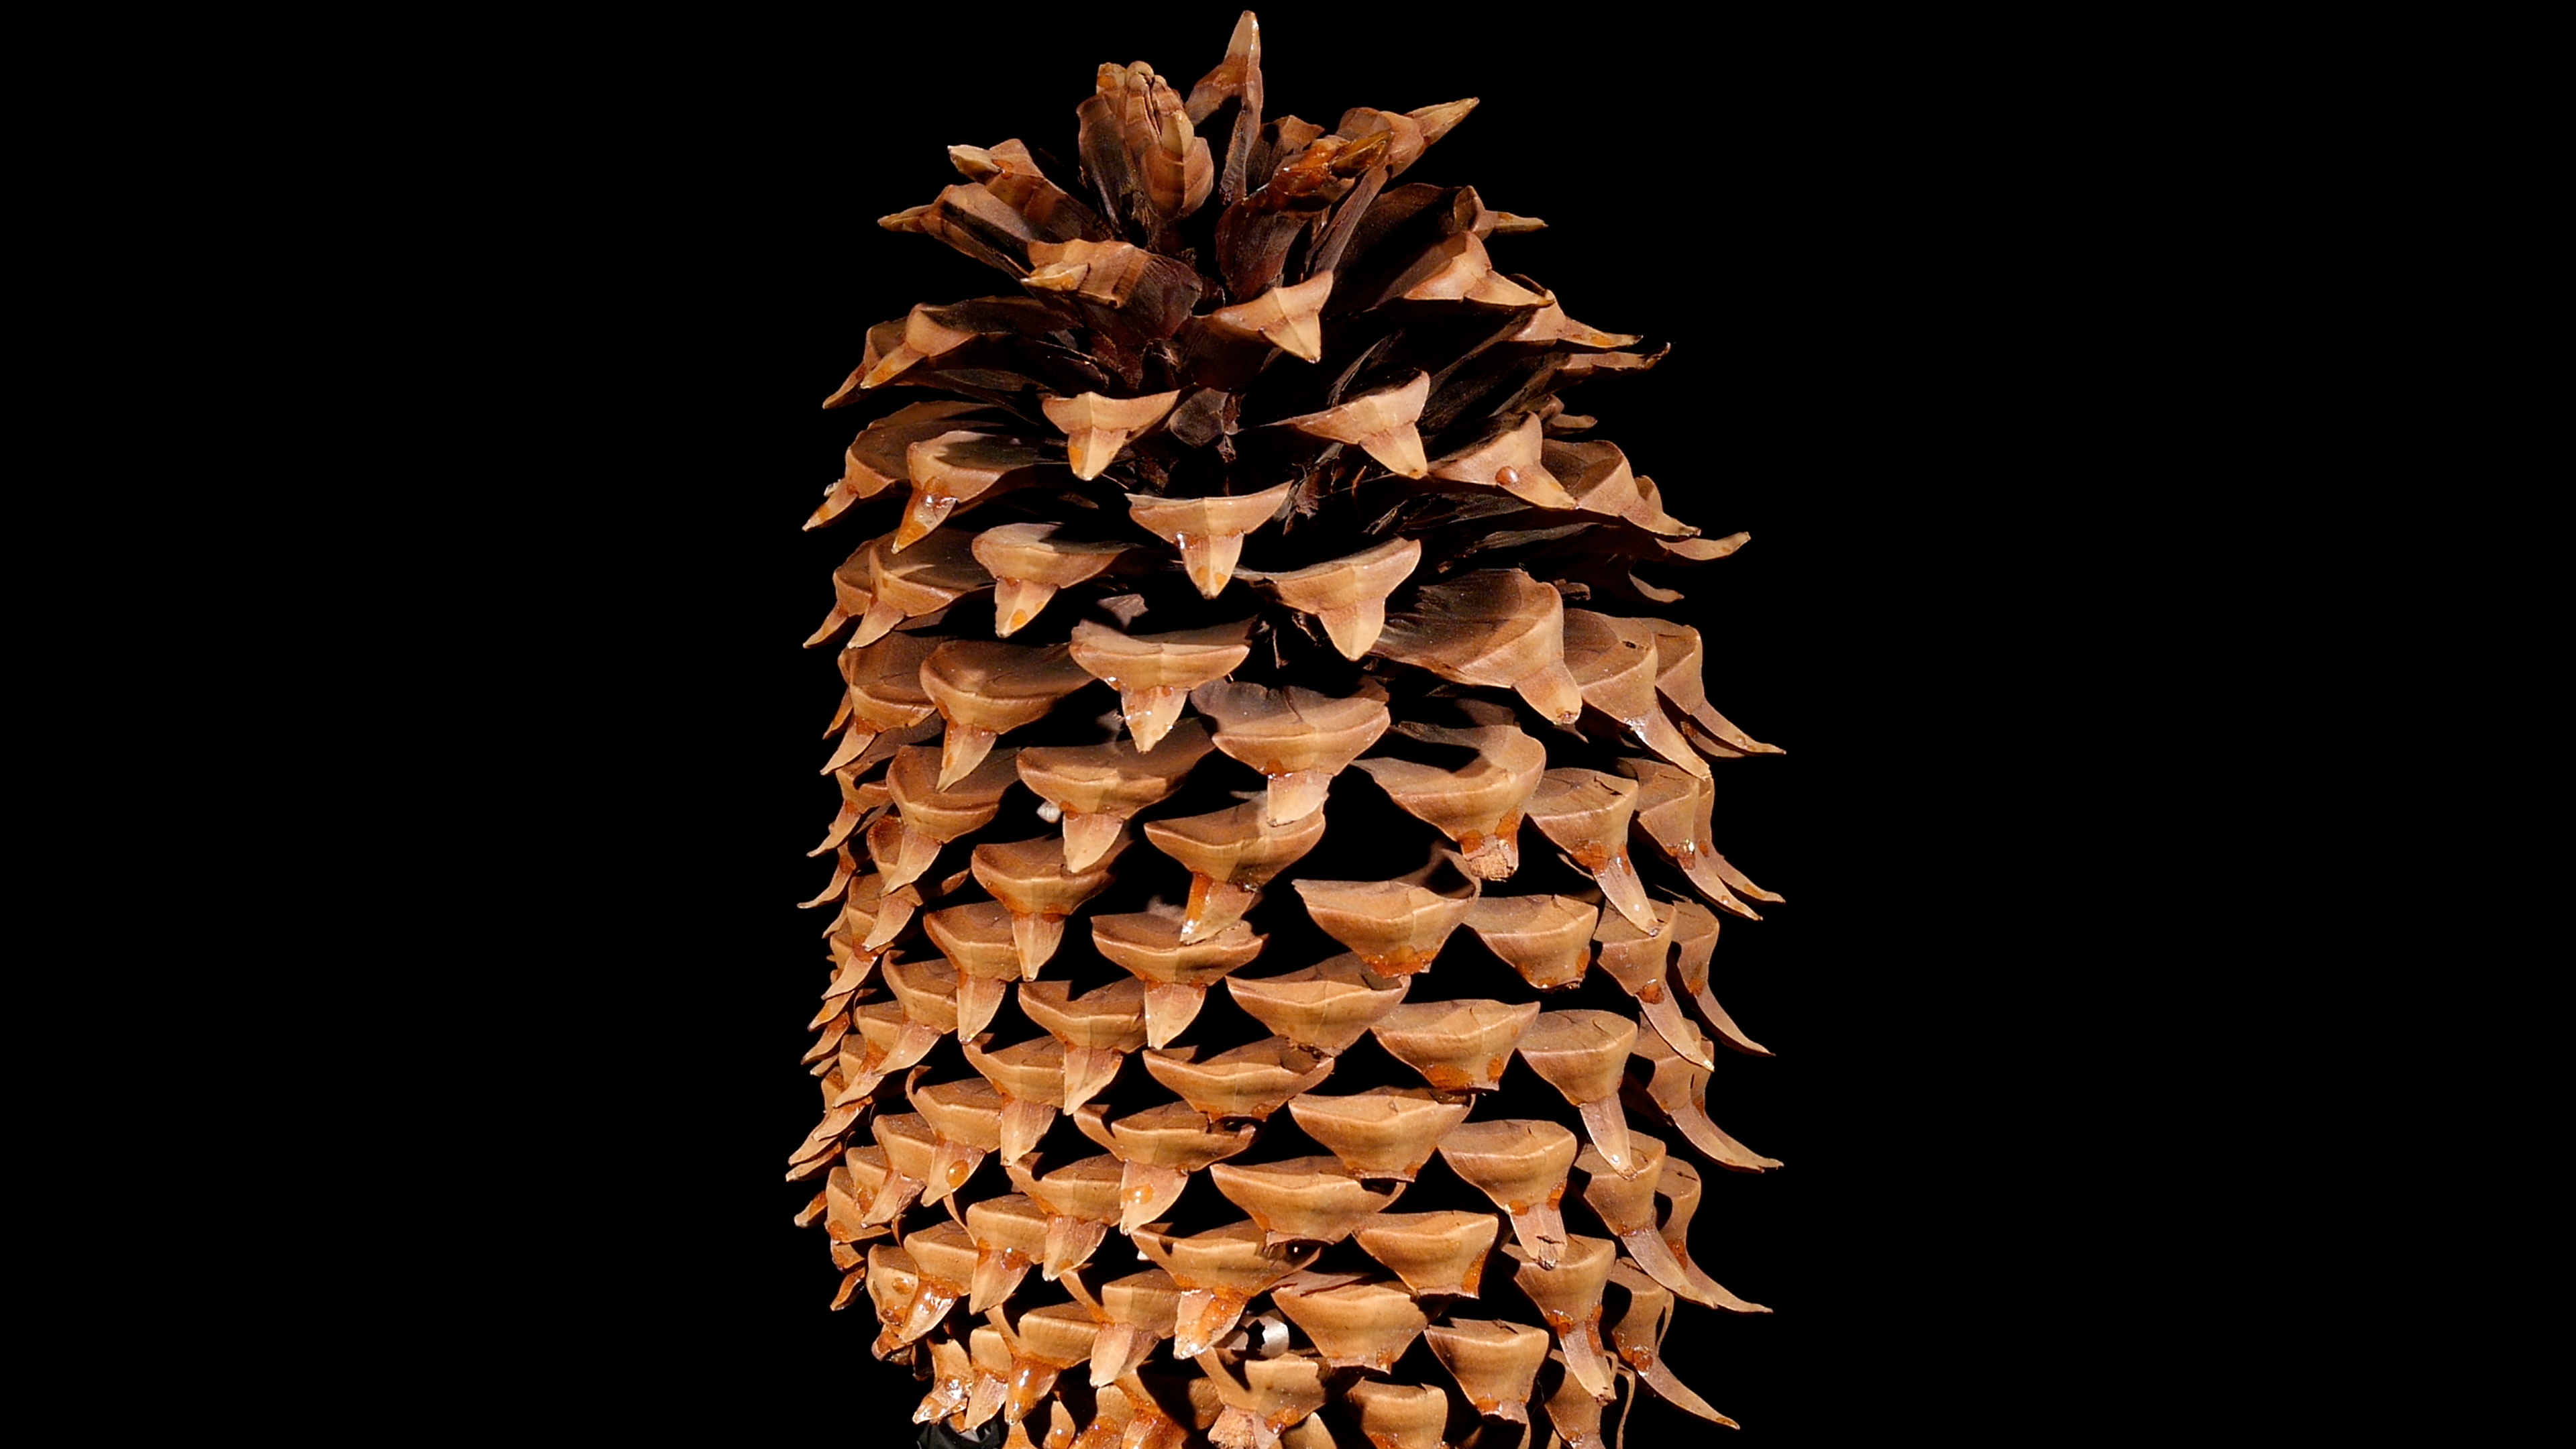 Christmas Tree Seeds.The Sex Lives Of Christmas Trees Pbs Nature Presents